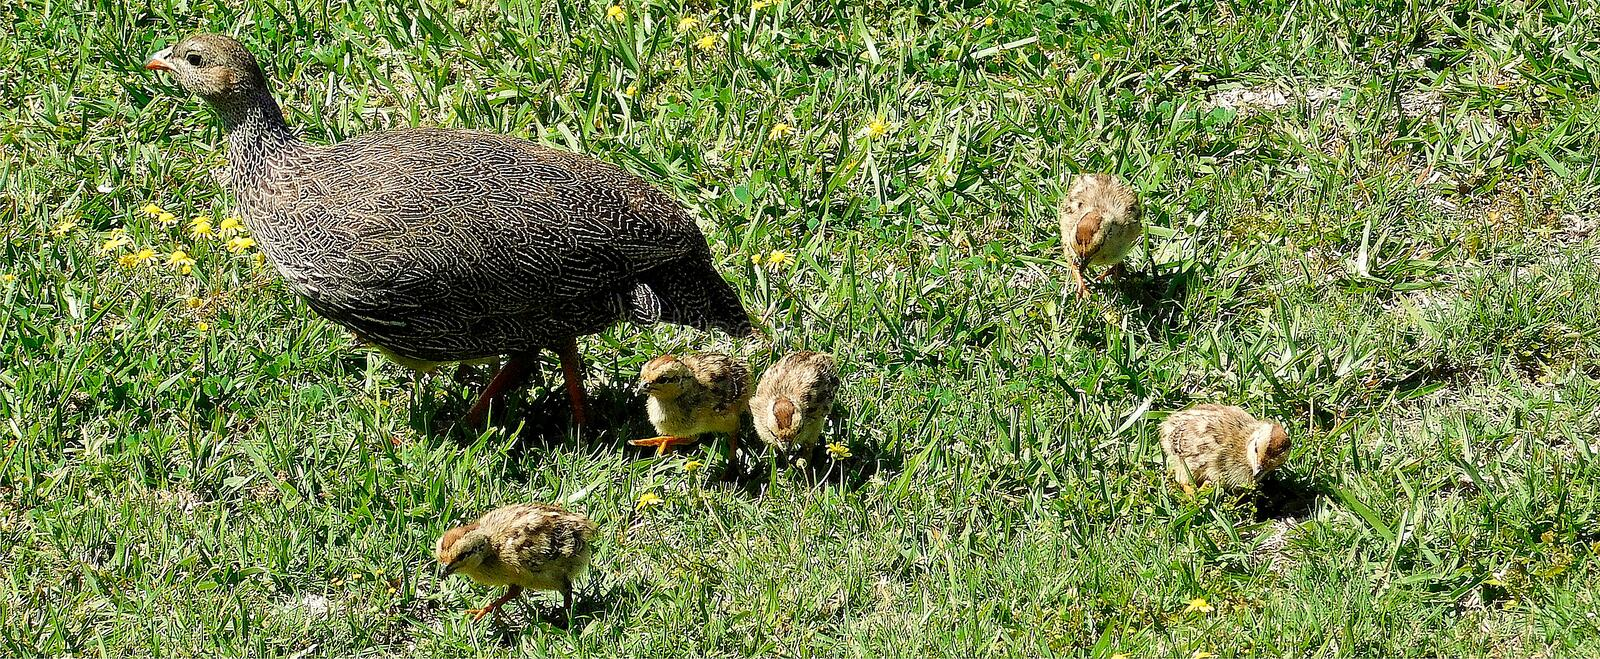 Cape Francolin with chicks. A Cape Francolin Francolinus capensis with her small pied chicks pecking at grass stems. South Africa royalty free stock photos